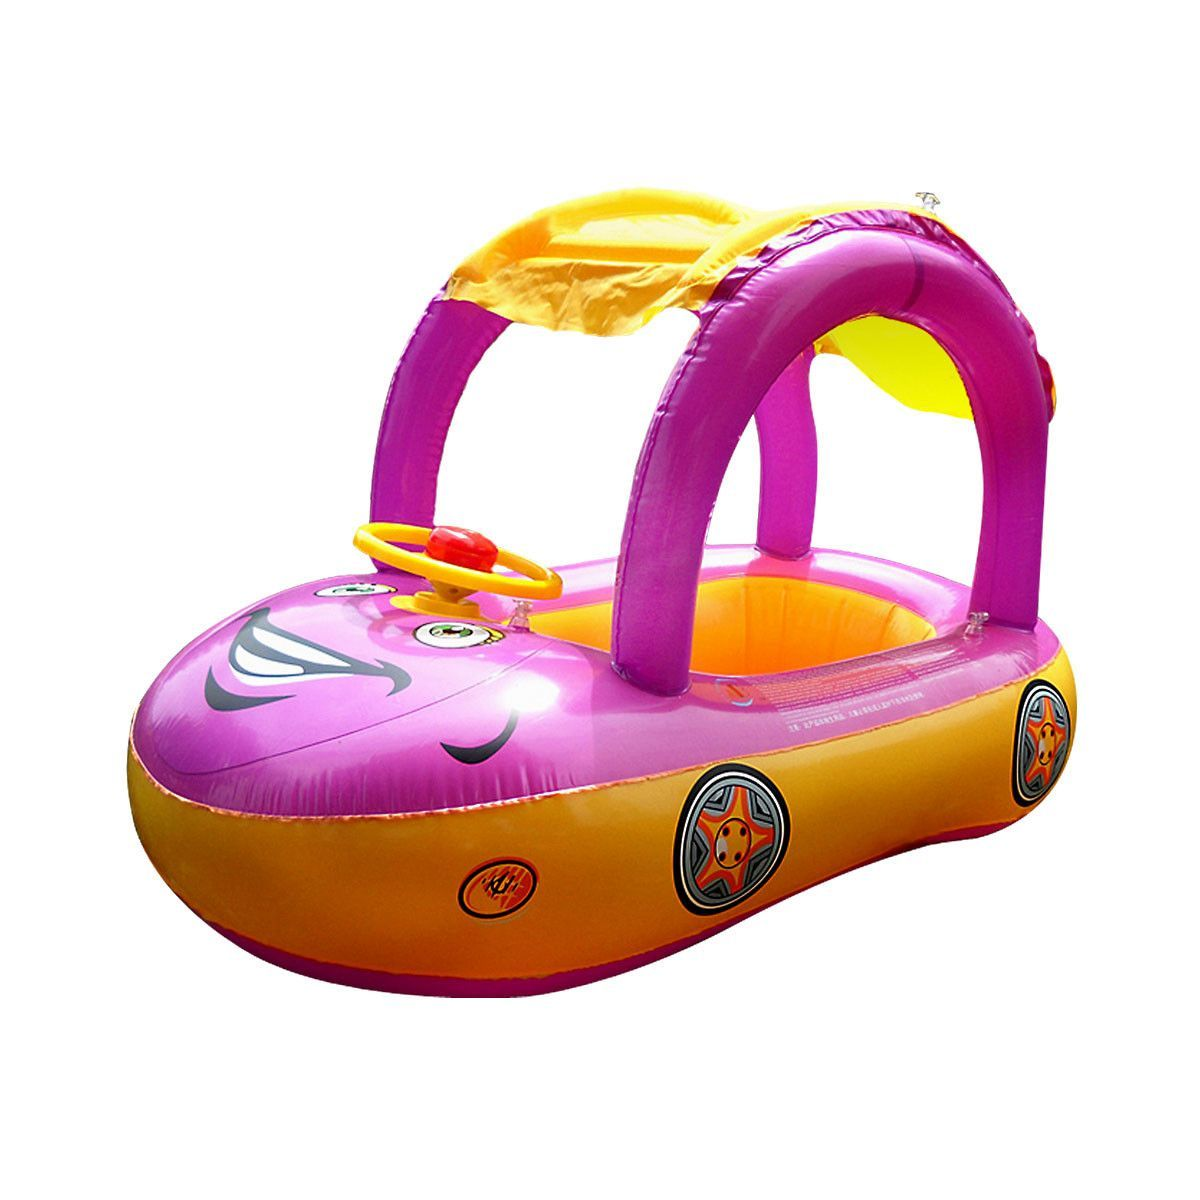 Inflatable Baby Float Seat Boat Tube Ring Car Sun shade Water Swim Swimming Pool Portable Purple  sc 1 st  Pinterest & Inflatable Baby Float Seat Boat Tube Ring Car Sun shade Water Swim ...